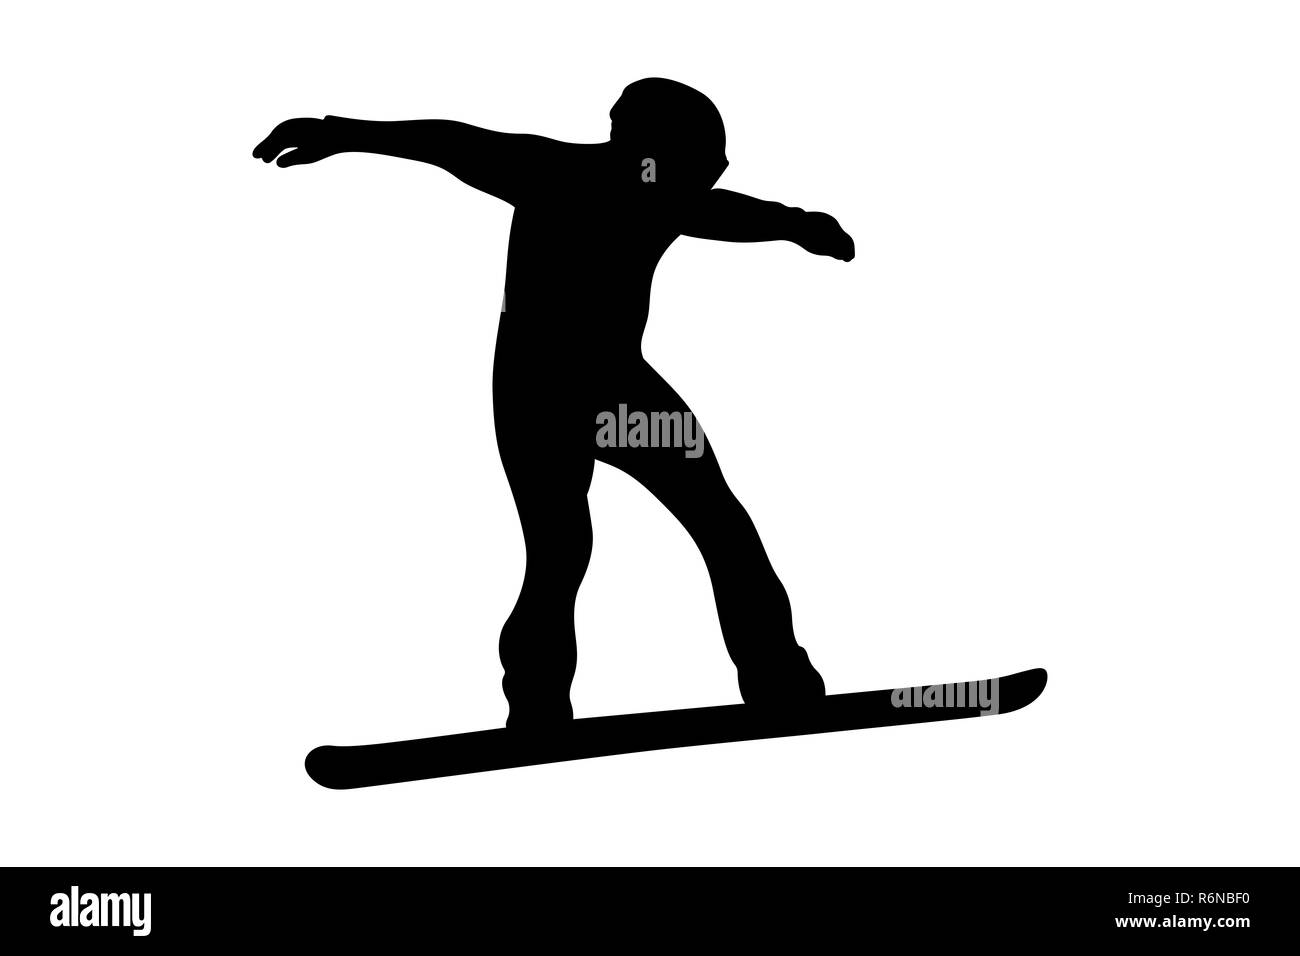 winter sport snowboarding rider in snowboard black silhouette - Stock Image